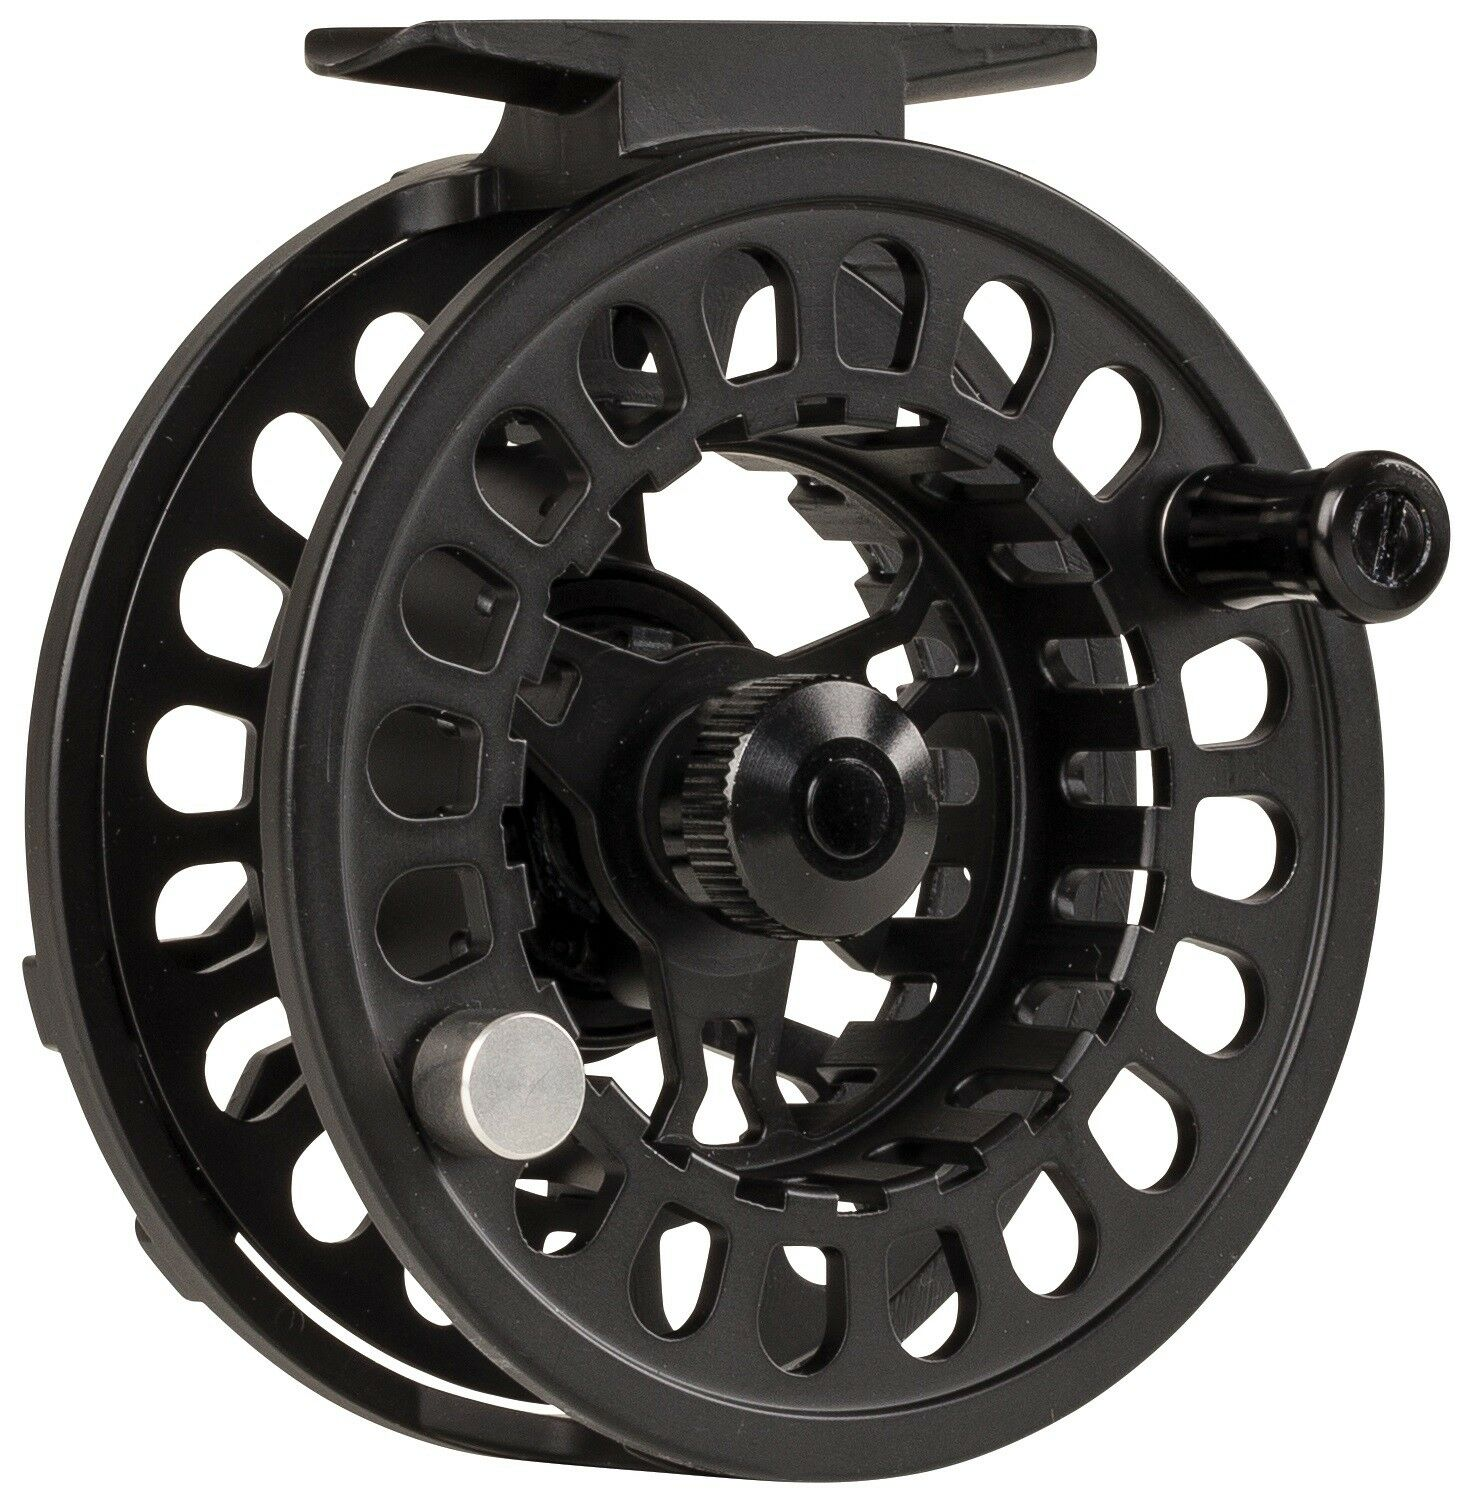 Greys GTS 300 Fliegenrolle Flyreel Fly Reel Rolle Angelrolle   buy 100% authentic quality